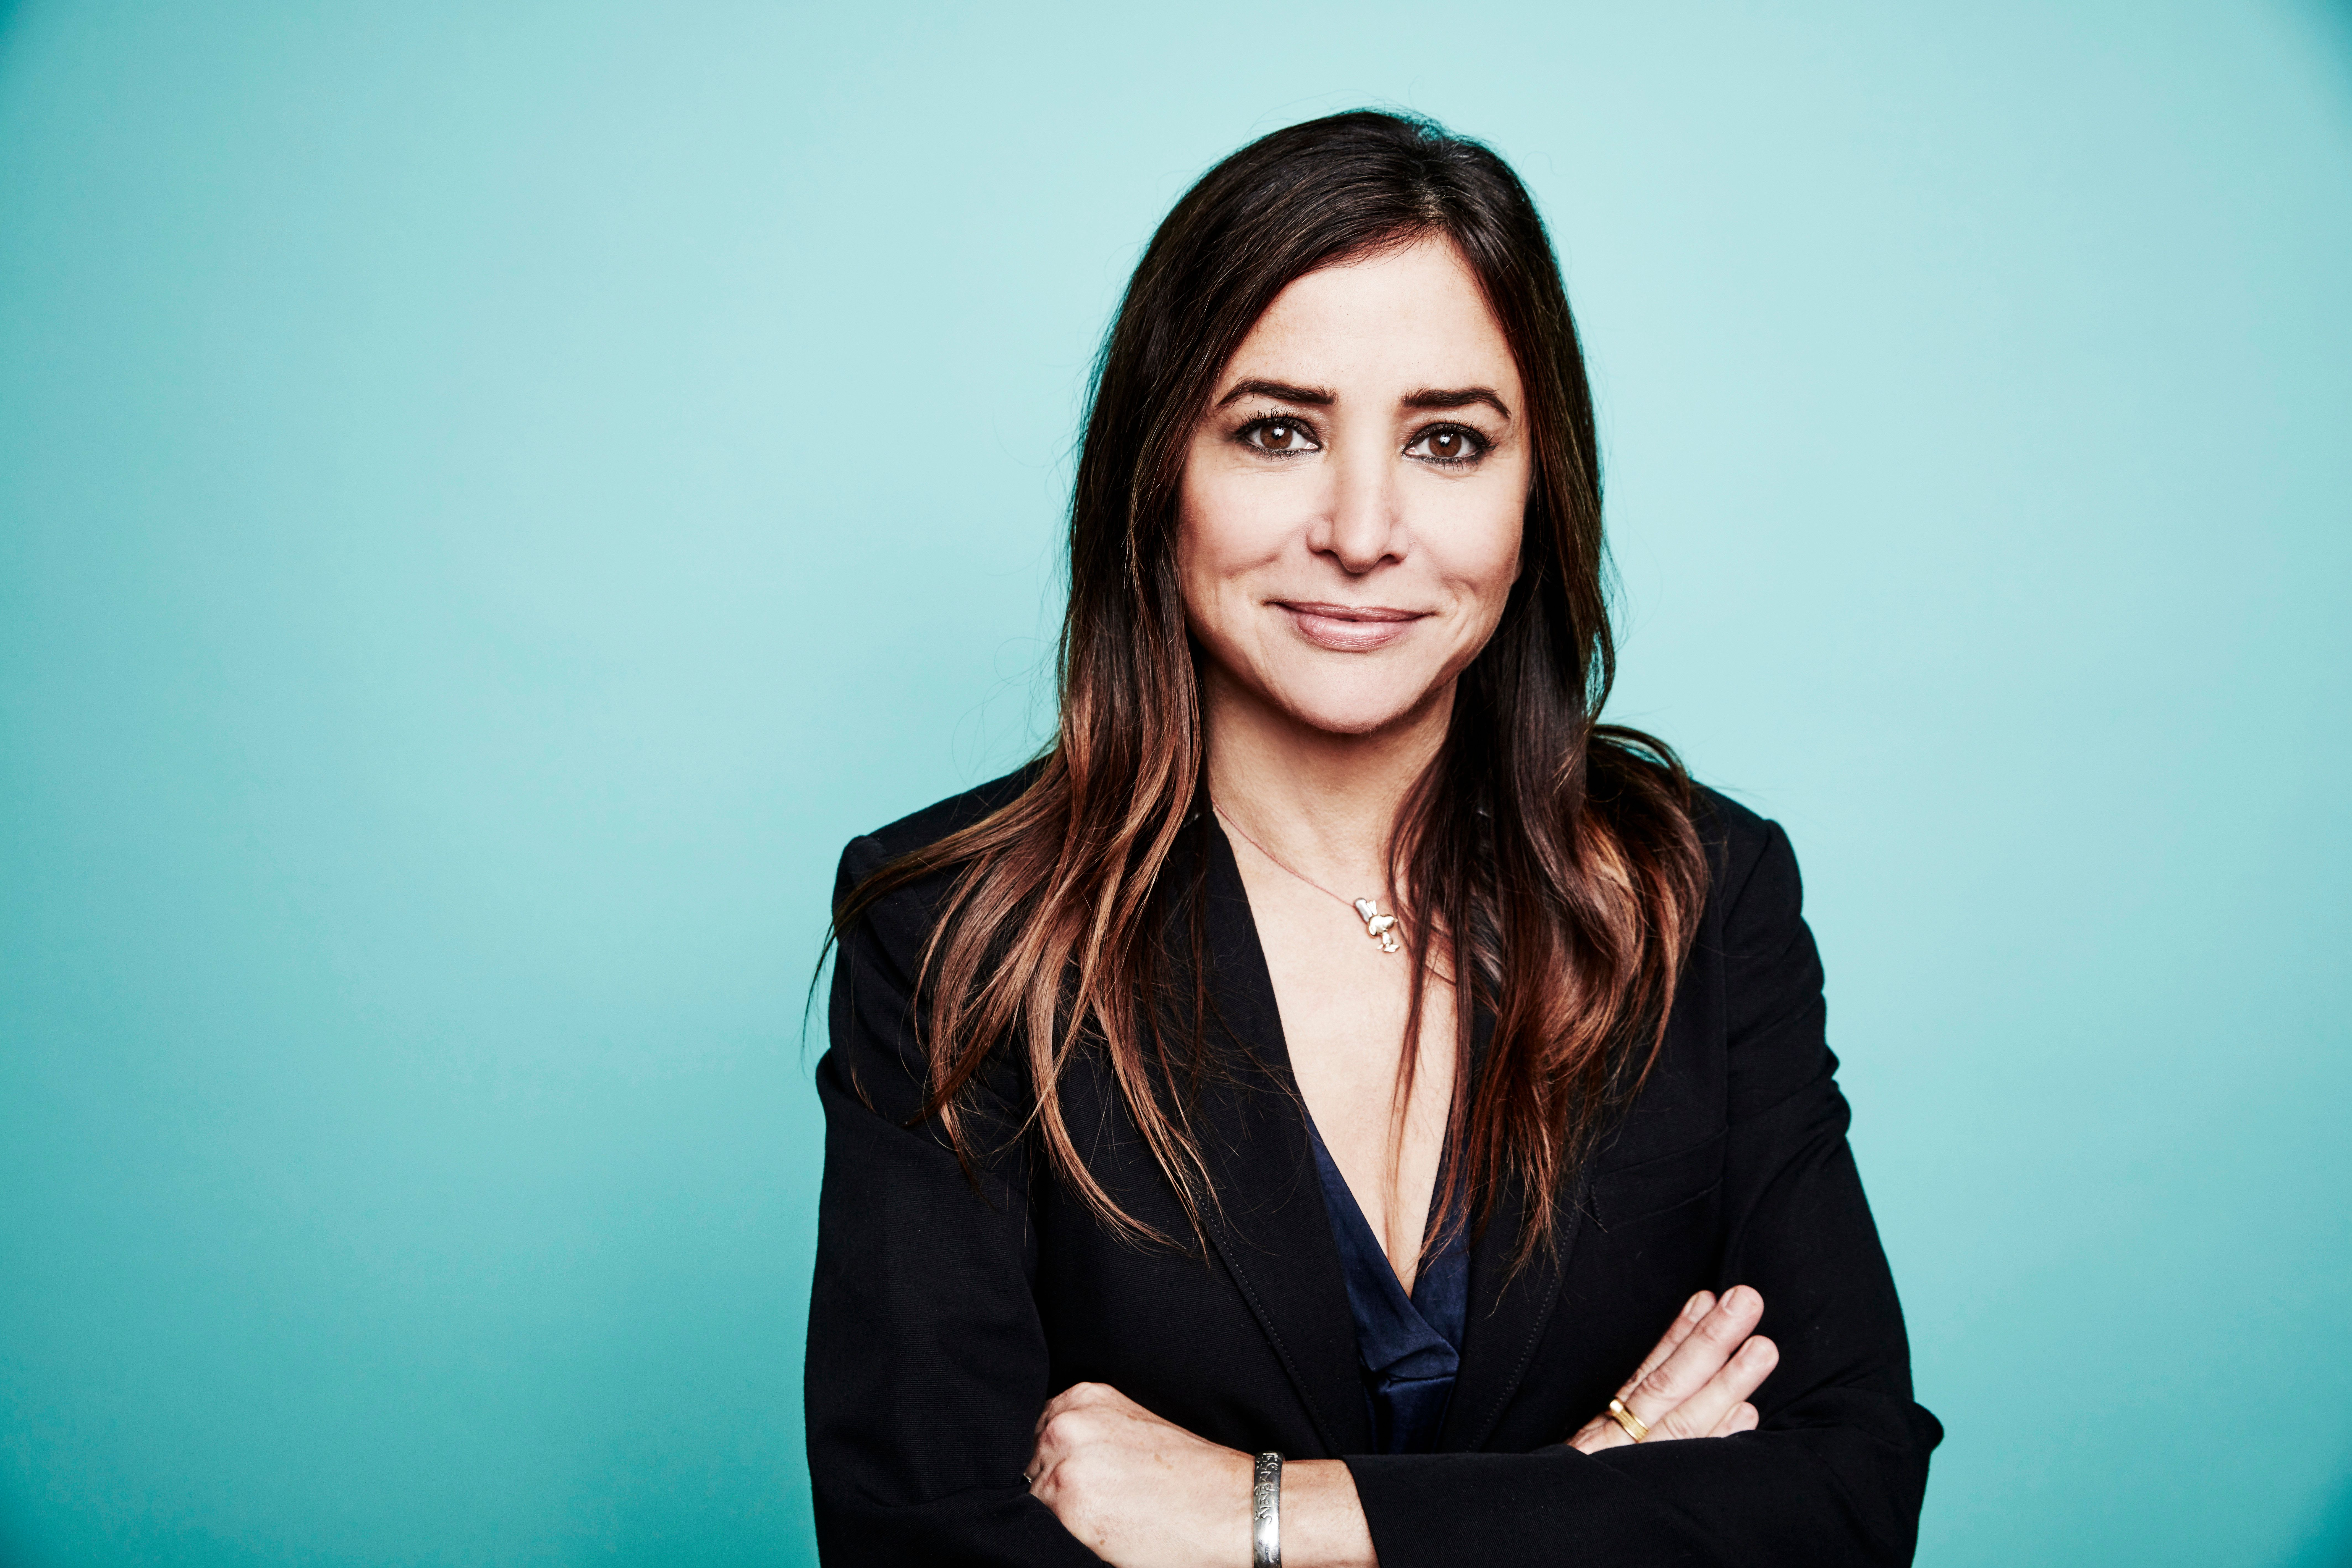 BEVERLY HILLS, CA - AUGUST 9: Pamela Adlon from FX's 'Better Things' poses for a portrait at the 2016 Summer TCAs Getty Images Portrait Studio at the Beverly Hilton Hotel on July 27th, 2016 in Beverly Hills, California (Photo by Maarten de Boer/Getty Images)